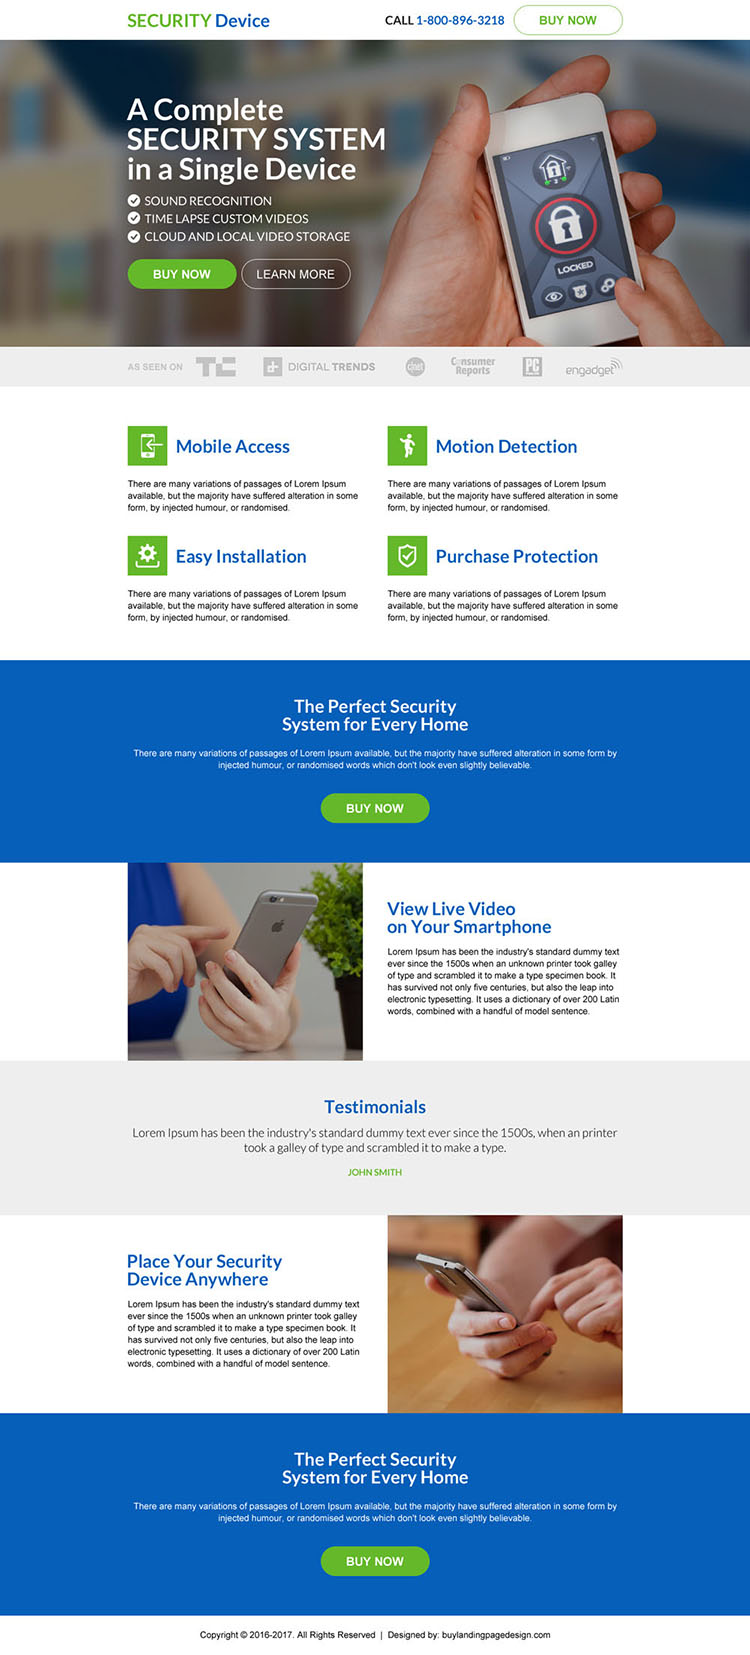 responsive security device selling landing page design